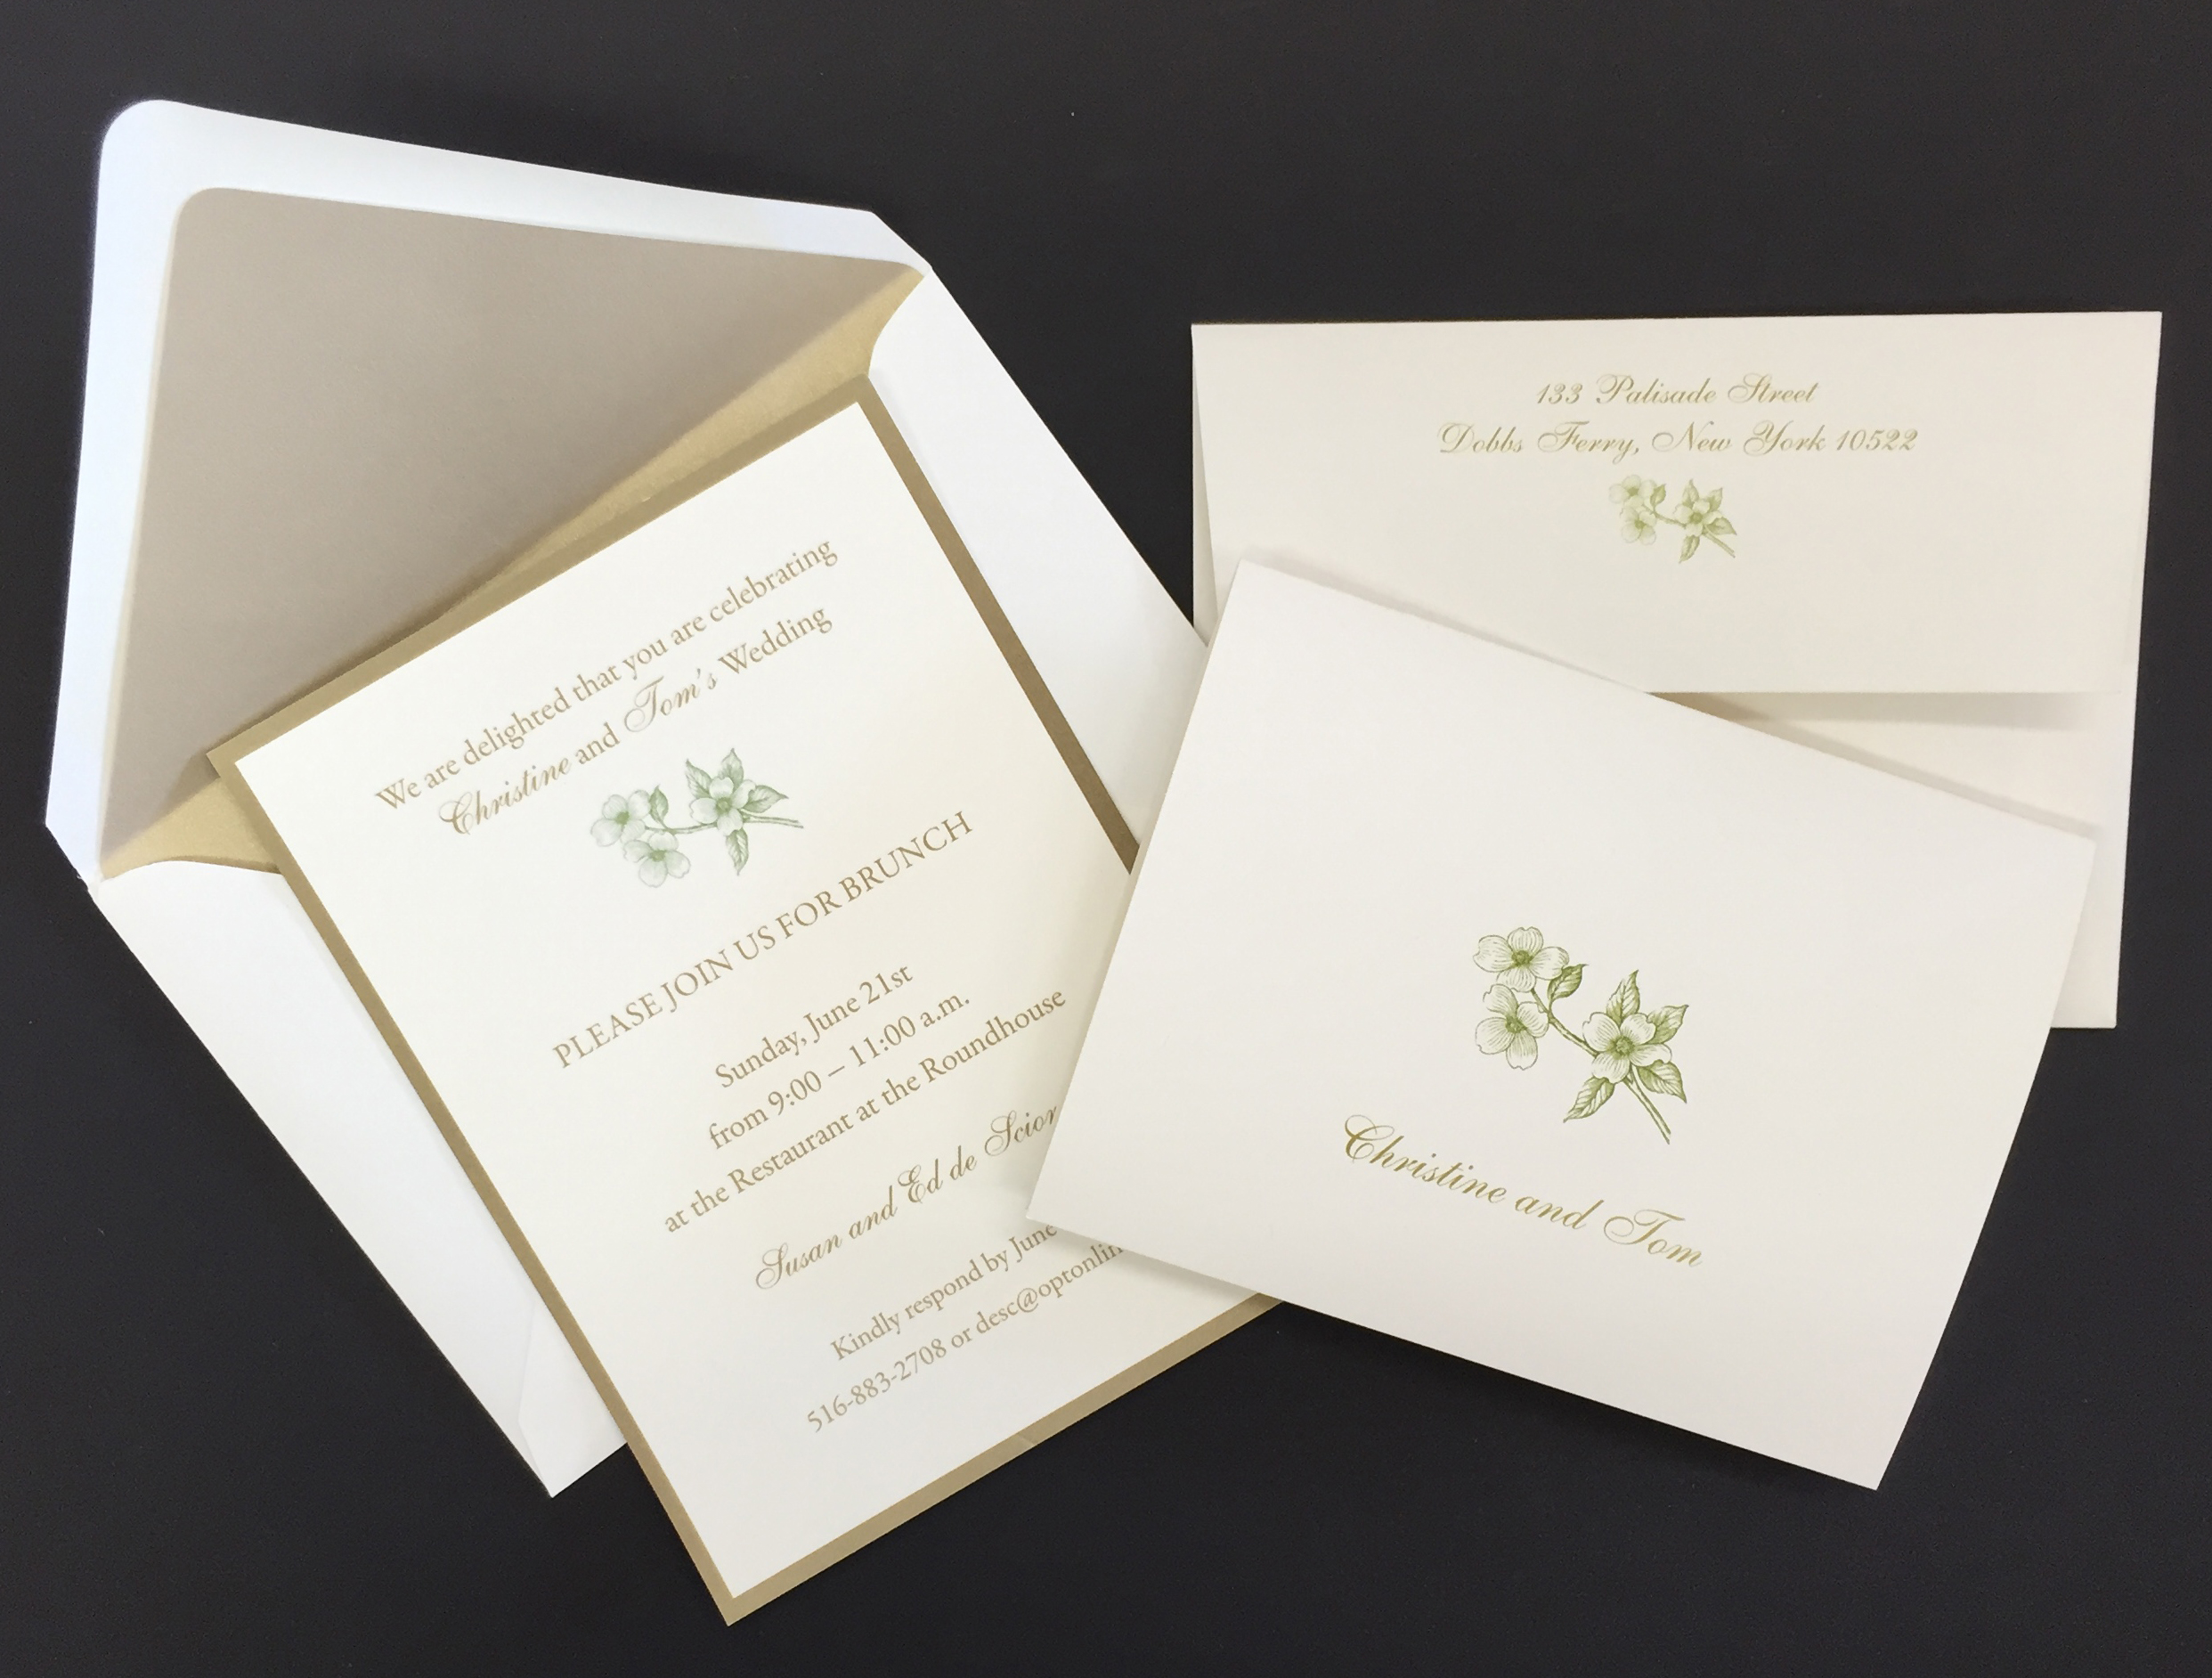 For A Perfect Summer Wedding In Upstate New York Bridetobe Selected These Exquisite Letterpress Invitations On Luscious Handmade Paper Using Rich Gold: Exquisite Tuscan Wedding Invitations At Websimilar.org